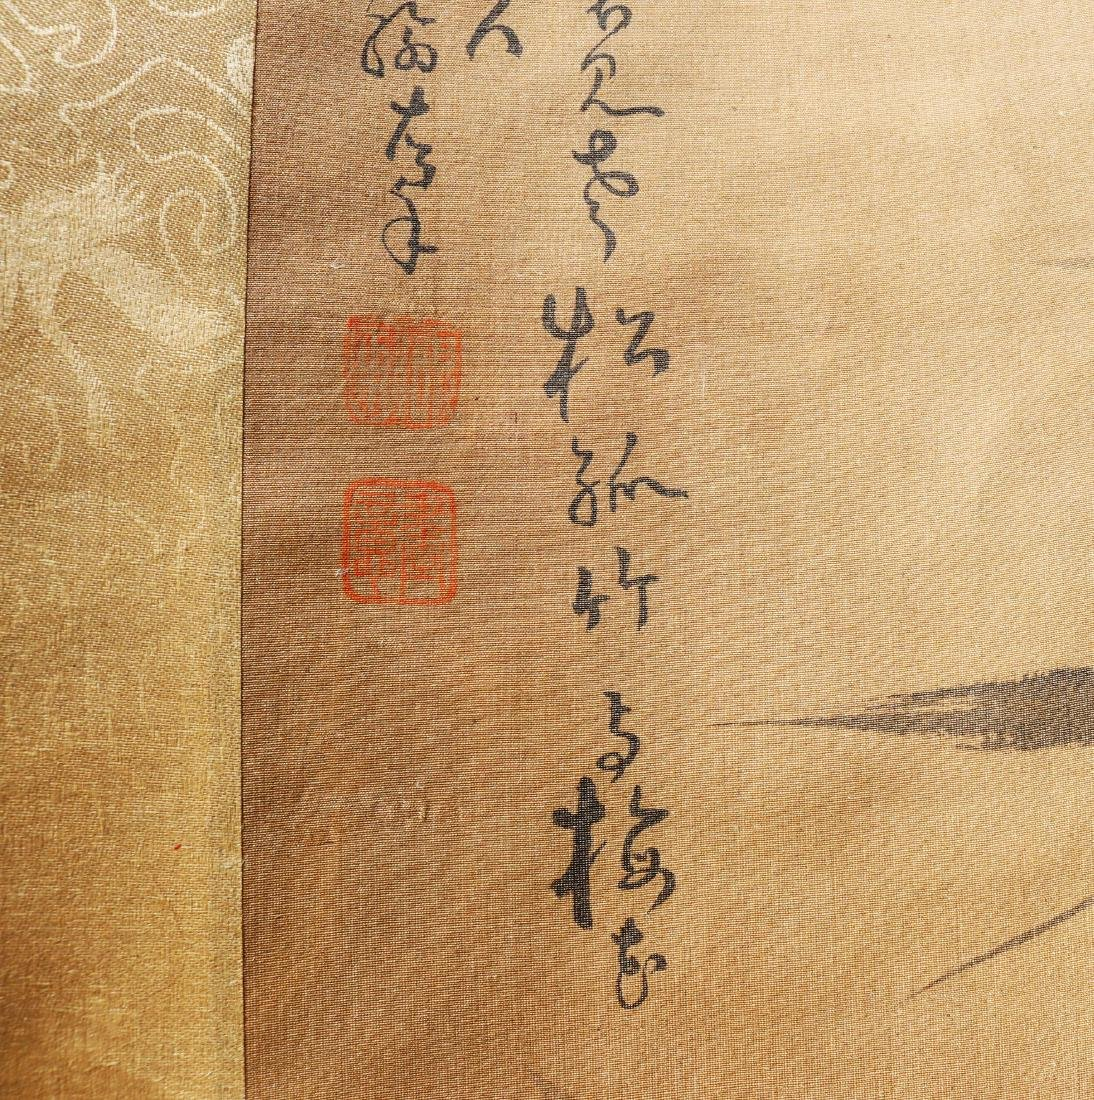 Attributed to Gao fenghan (Chinese Scroll Painting) - 4